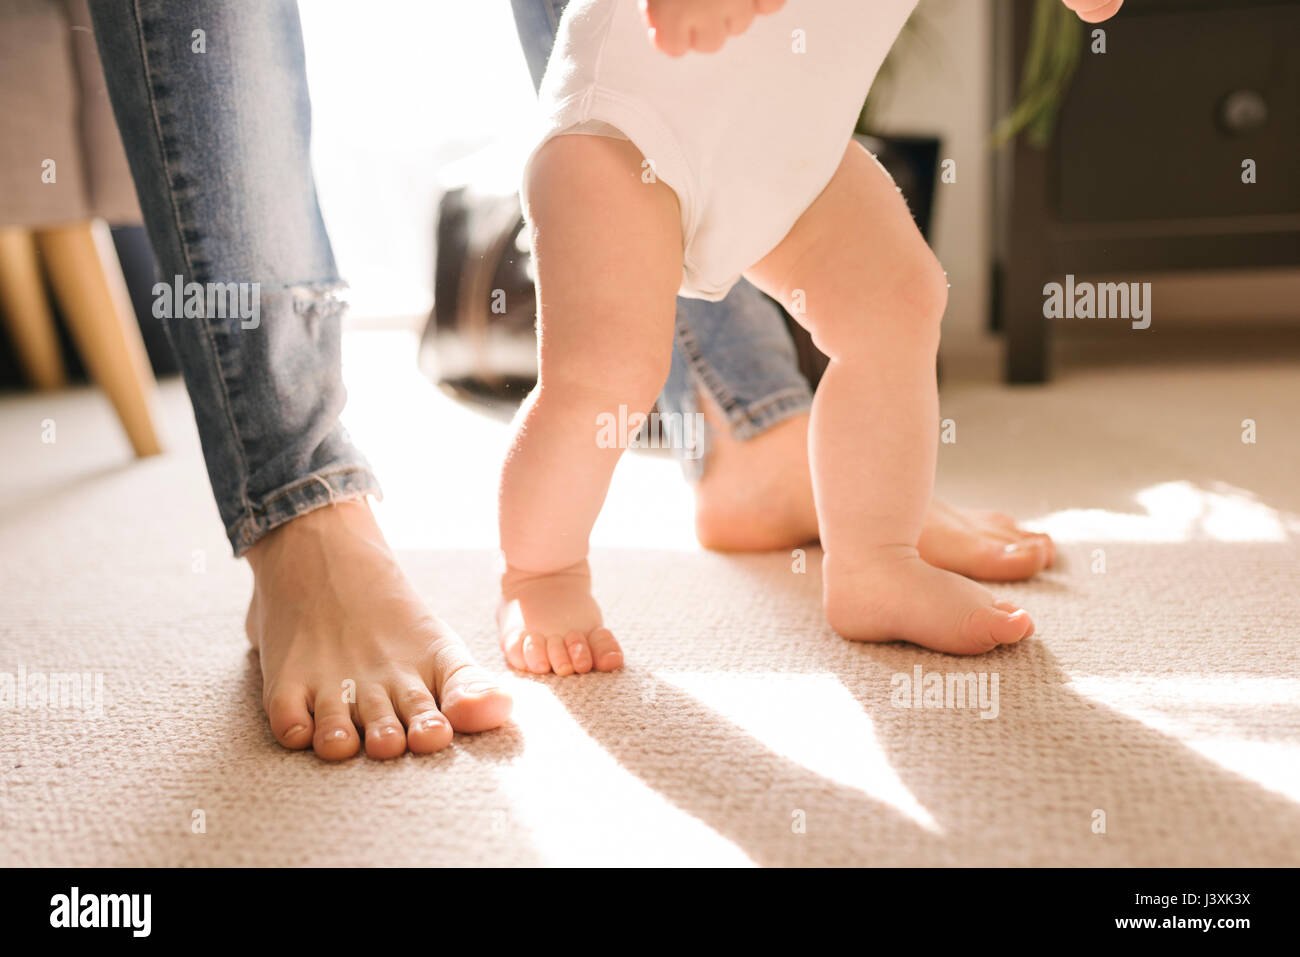 Mother and baby's bare feet on carpet in living room Stock Photo